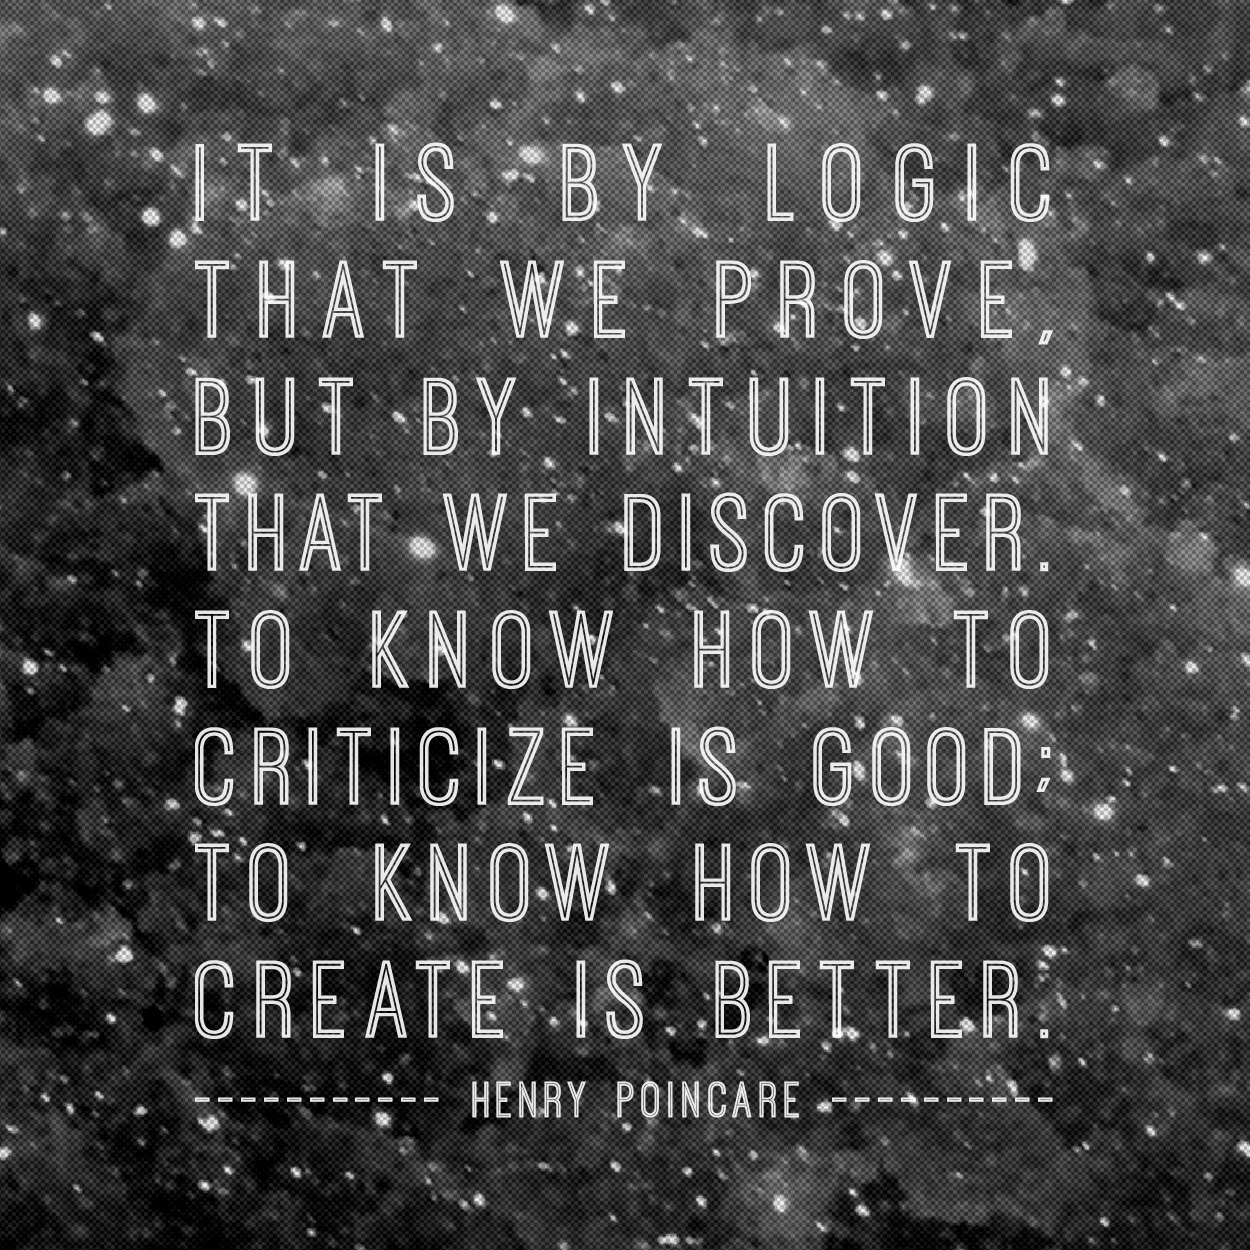 It Is By Logic That We Prove, But By Intuition That We Discover.